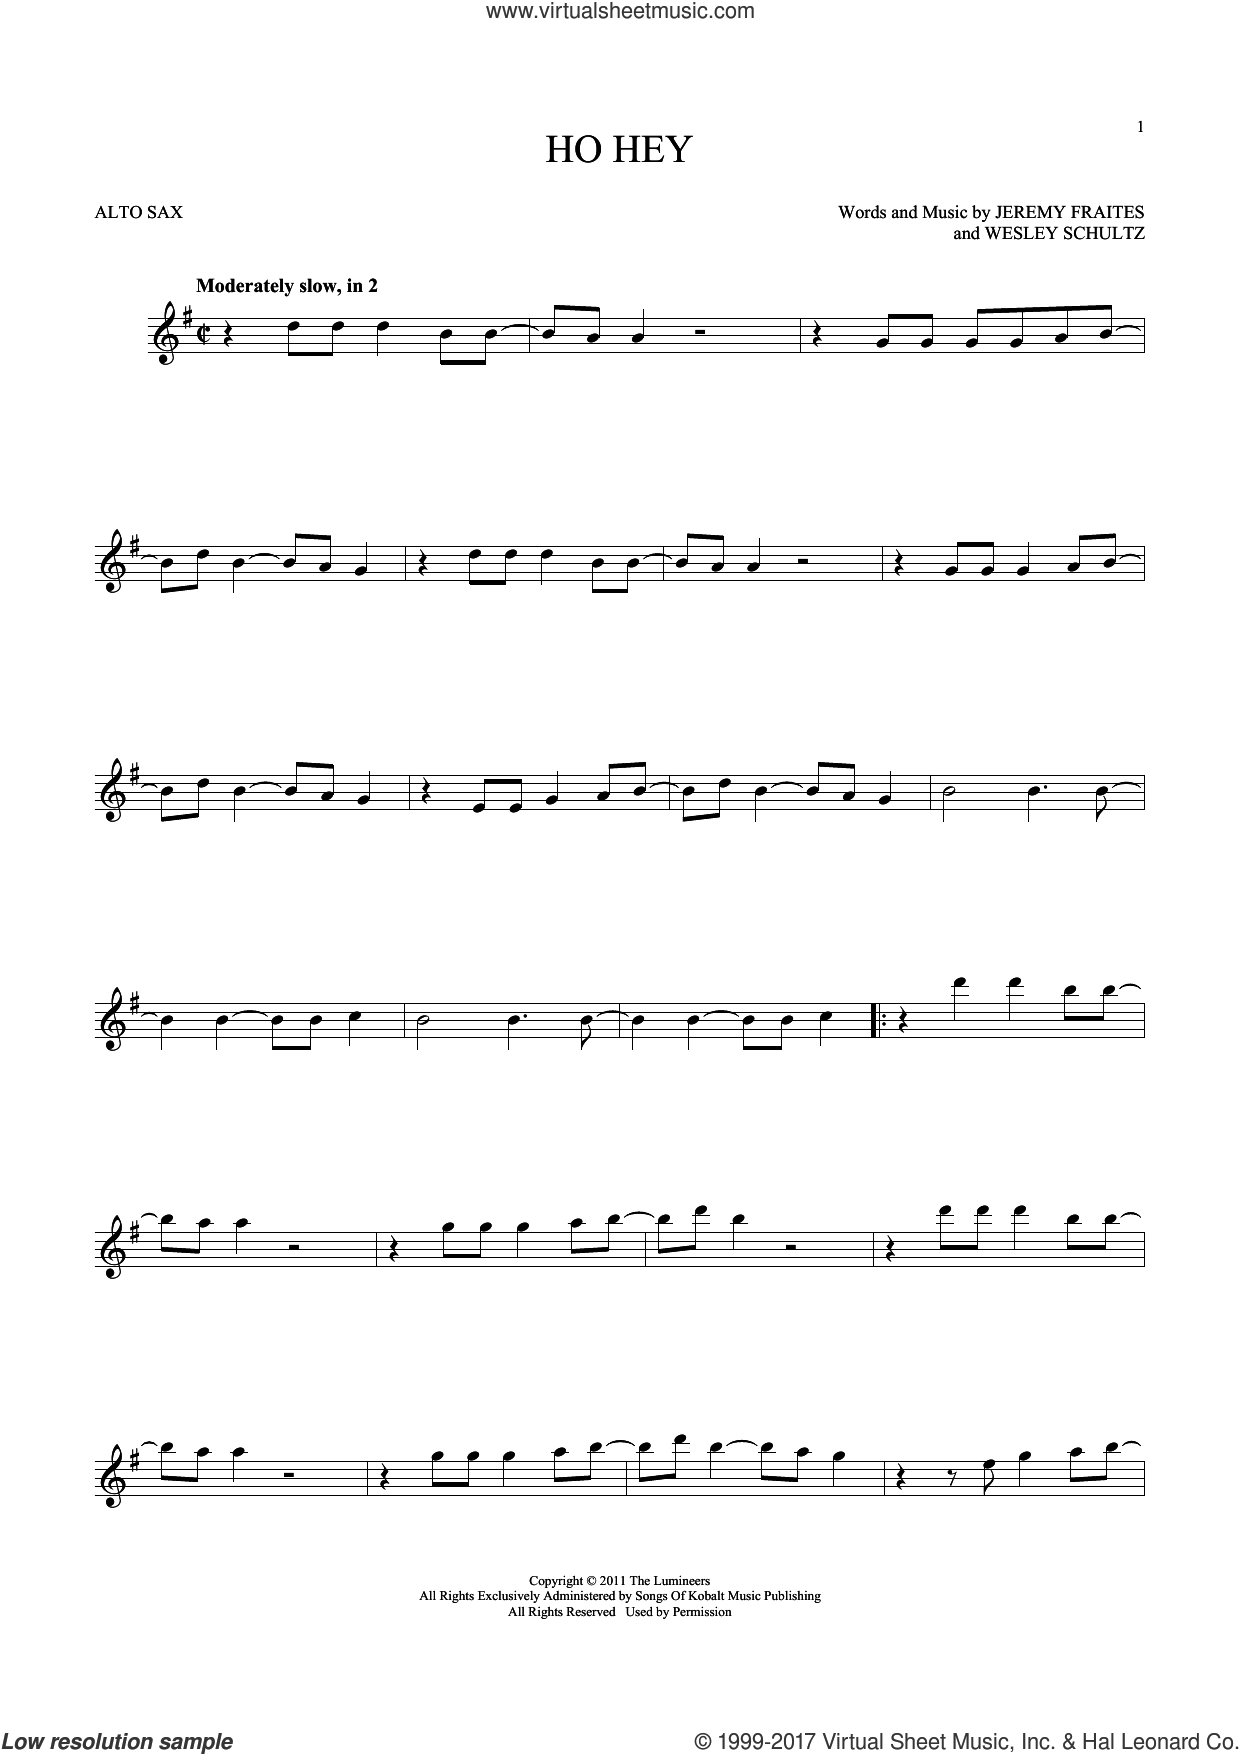 Ho Hey sheet music for alto saxophone solo by The Lumineers, Lennon & Maisy, Jeremy Fraites and Wesley Schultz, intermediate skill level